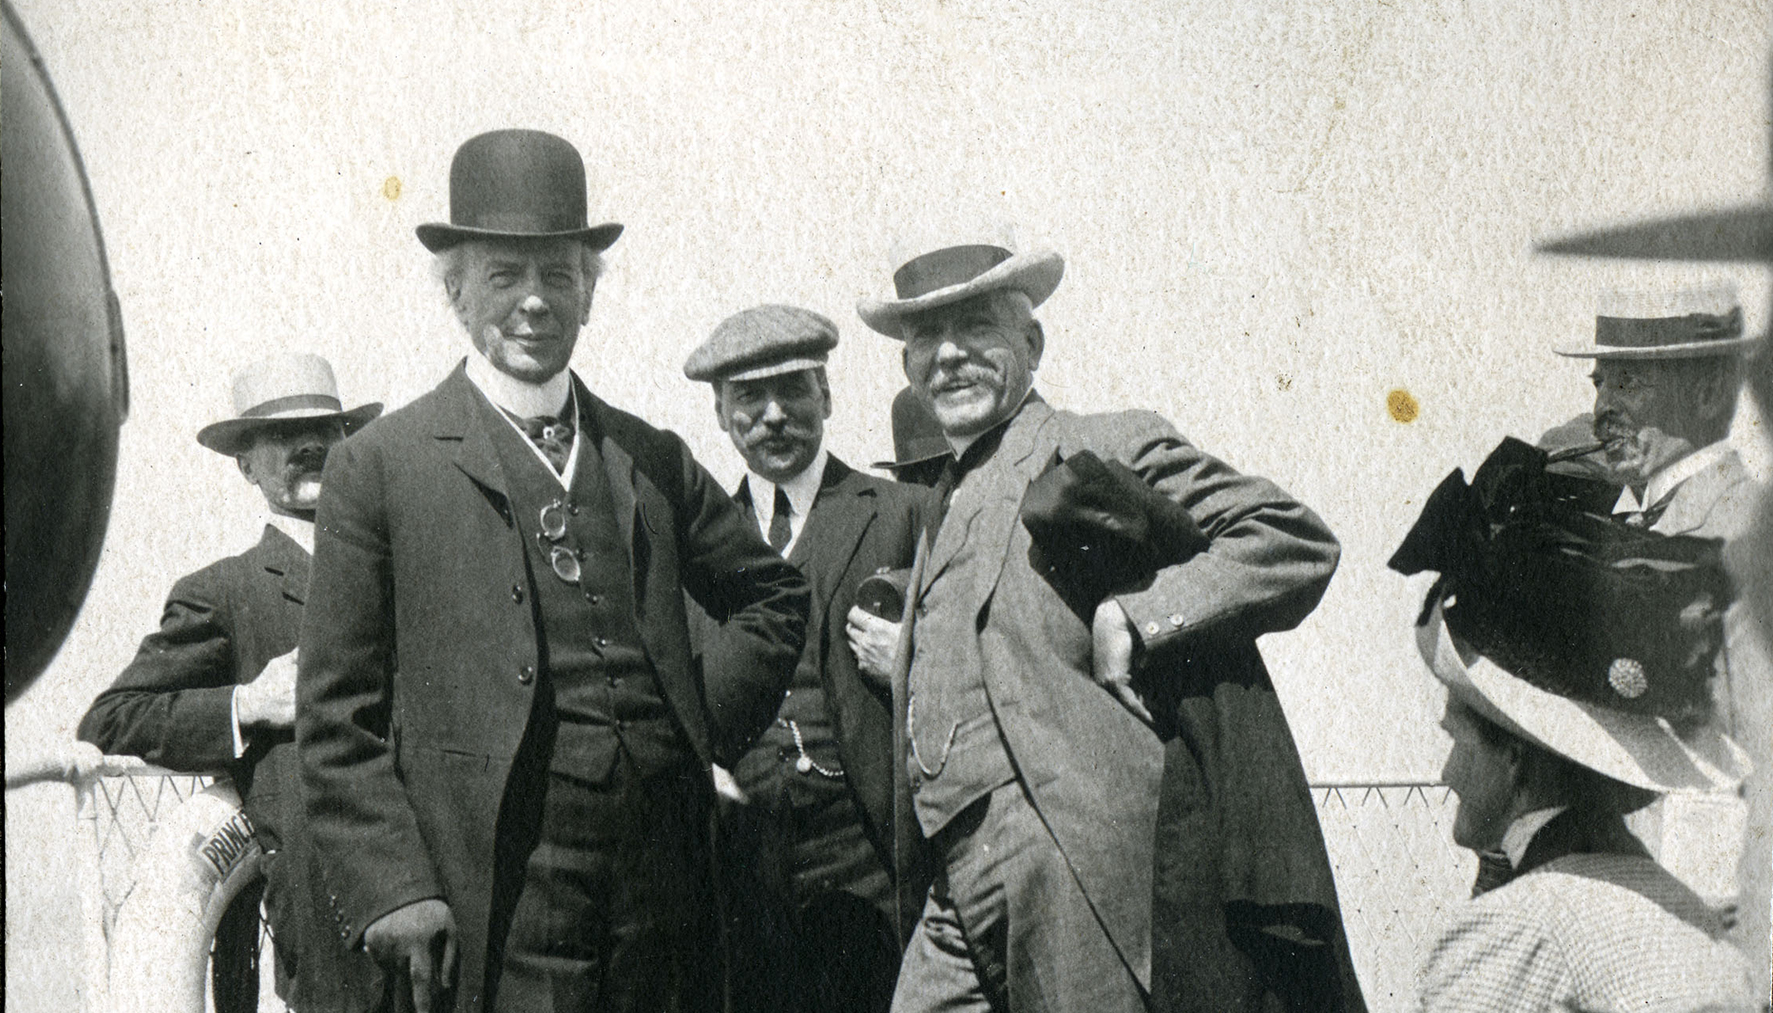 Prime Minister Sir Wilfrid Laurier and colleagues on board a Grand Trunk Pacific steamship, ca. 1910